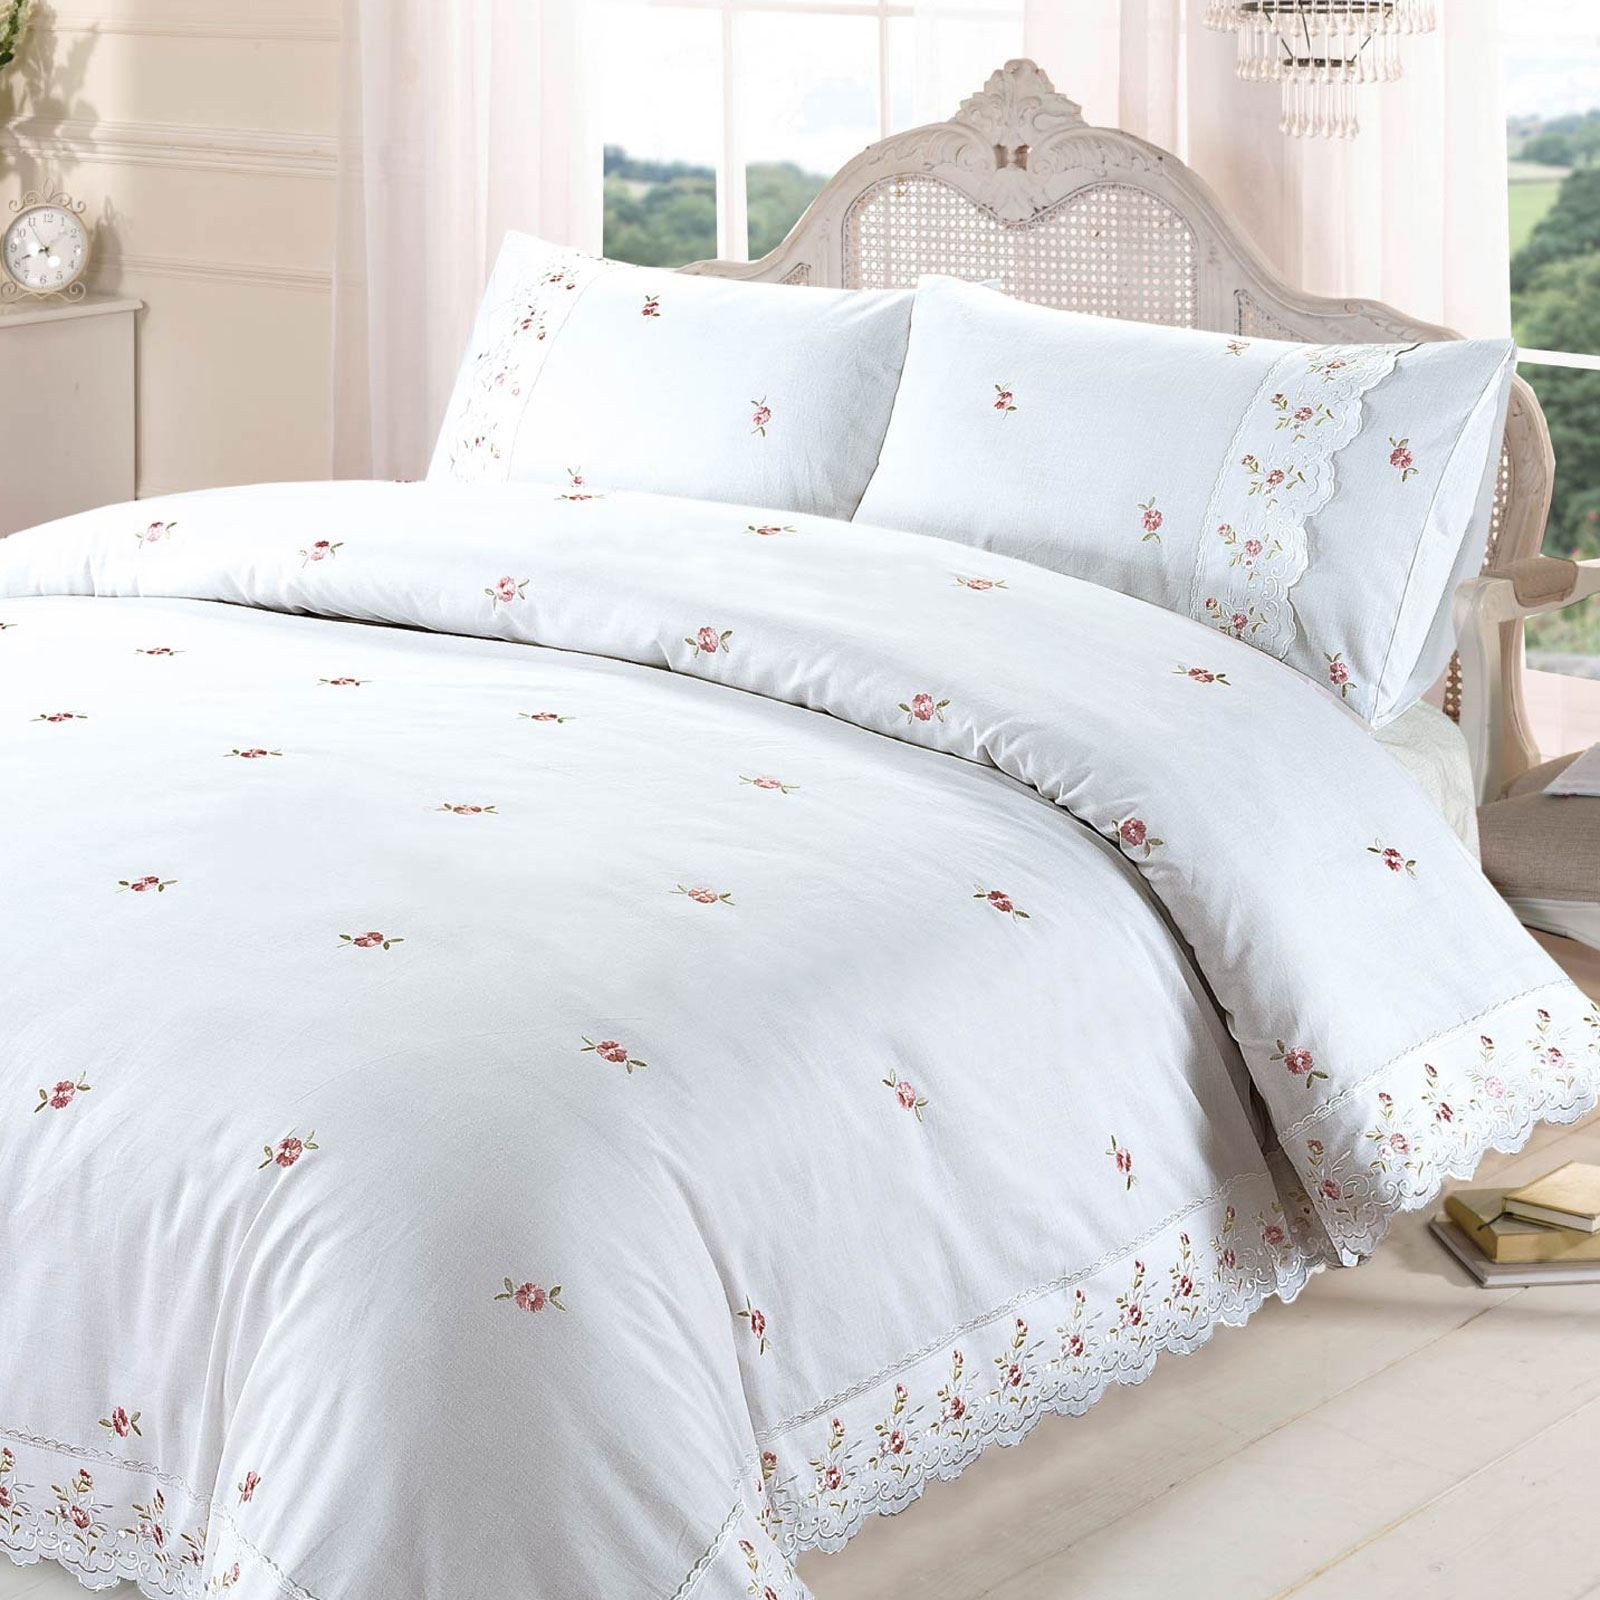 Sophie Floral White Double Duvet Cover Set Embroidered Flowers